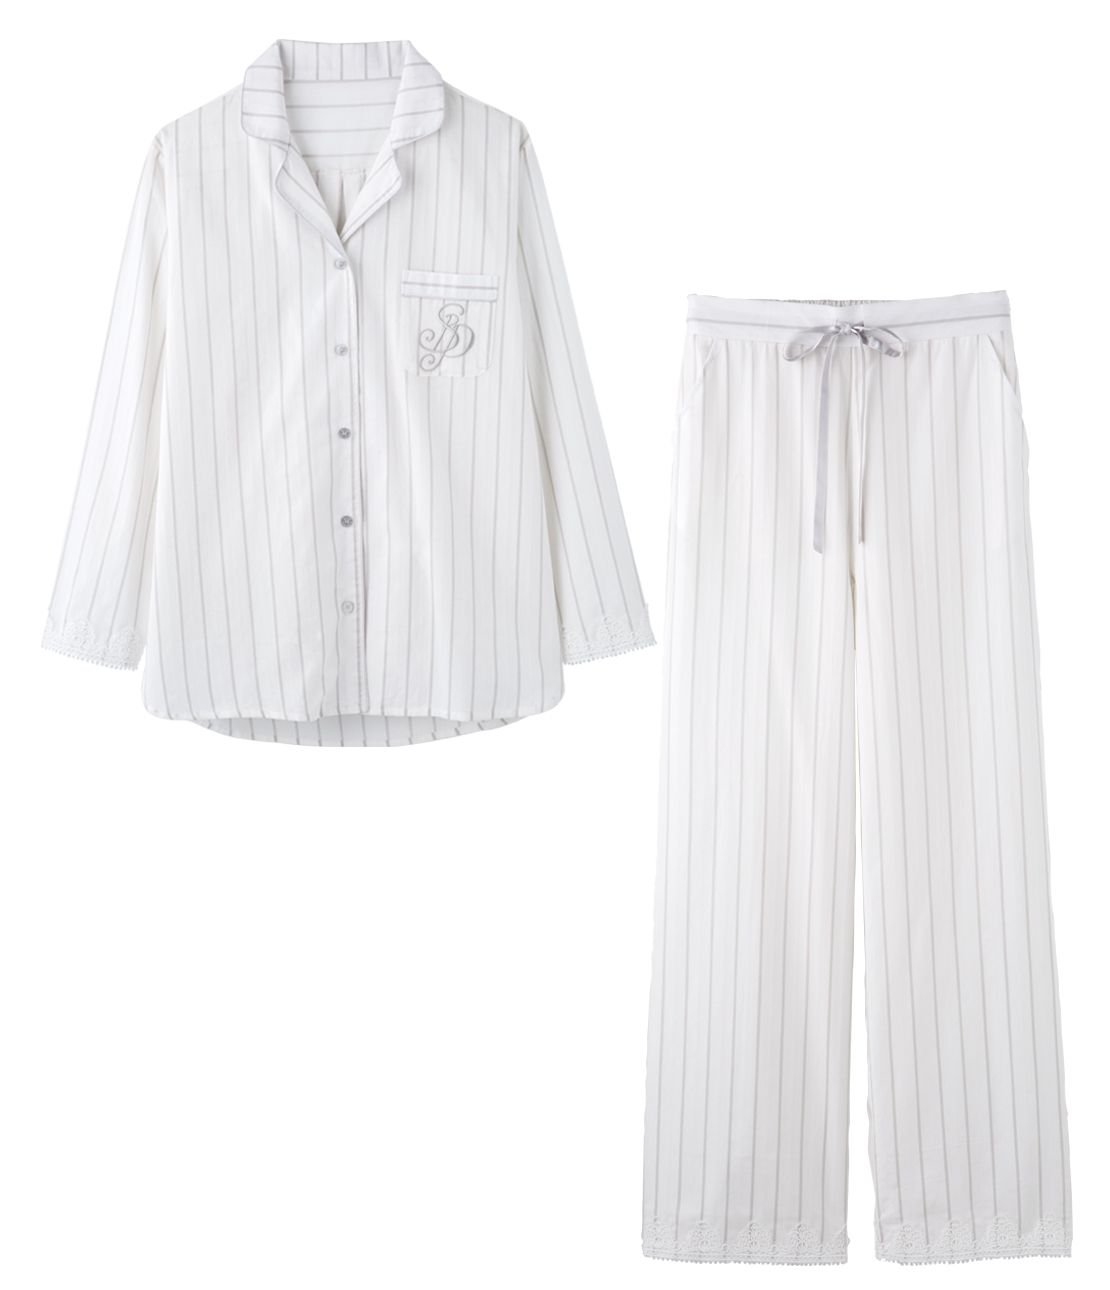 Stripe jacquard shirt pajamas